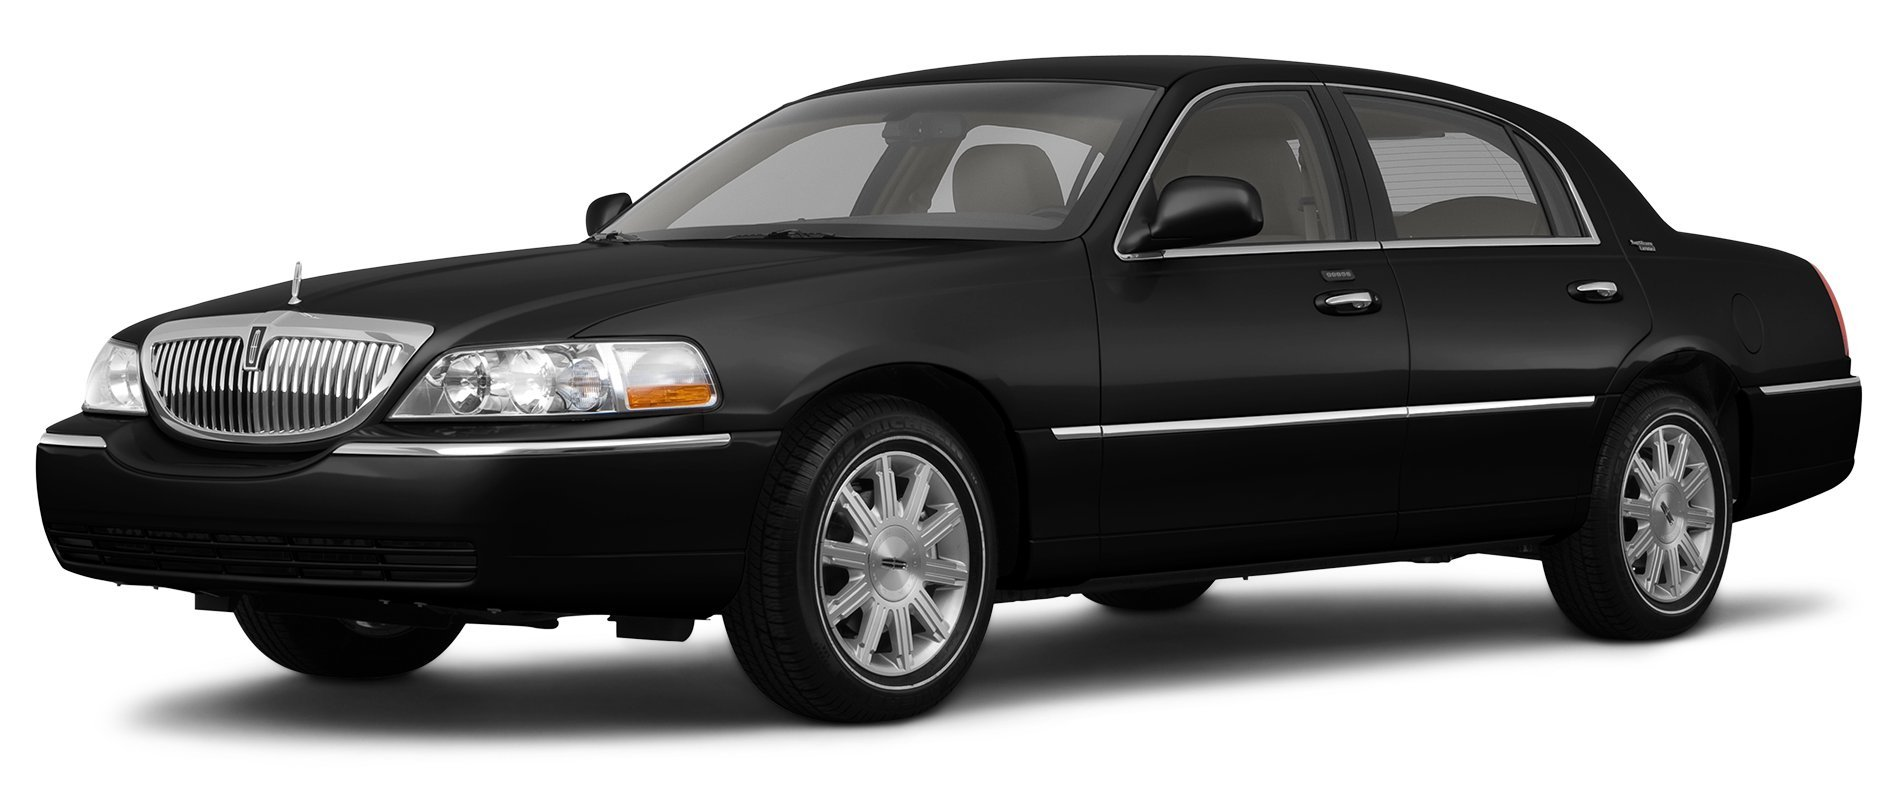 2011 lincoln town car reviews images and. Black Bedroom Furniture Sets. Home Design Ideas